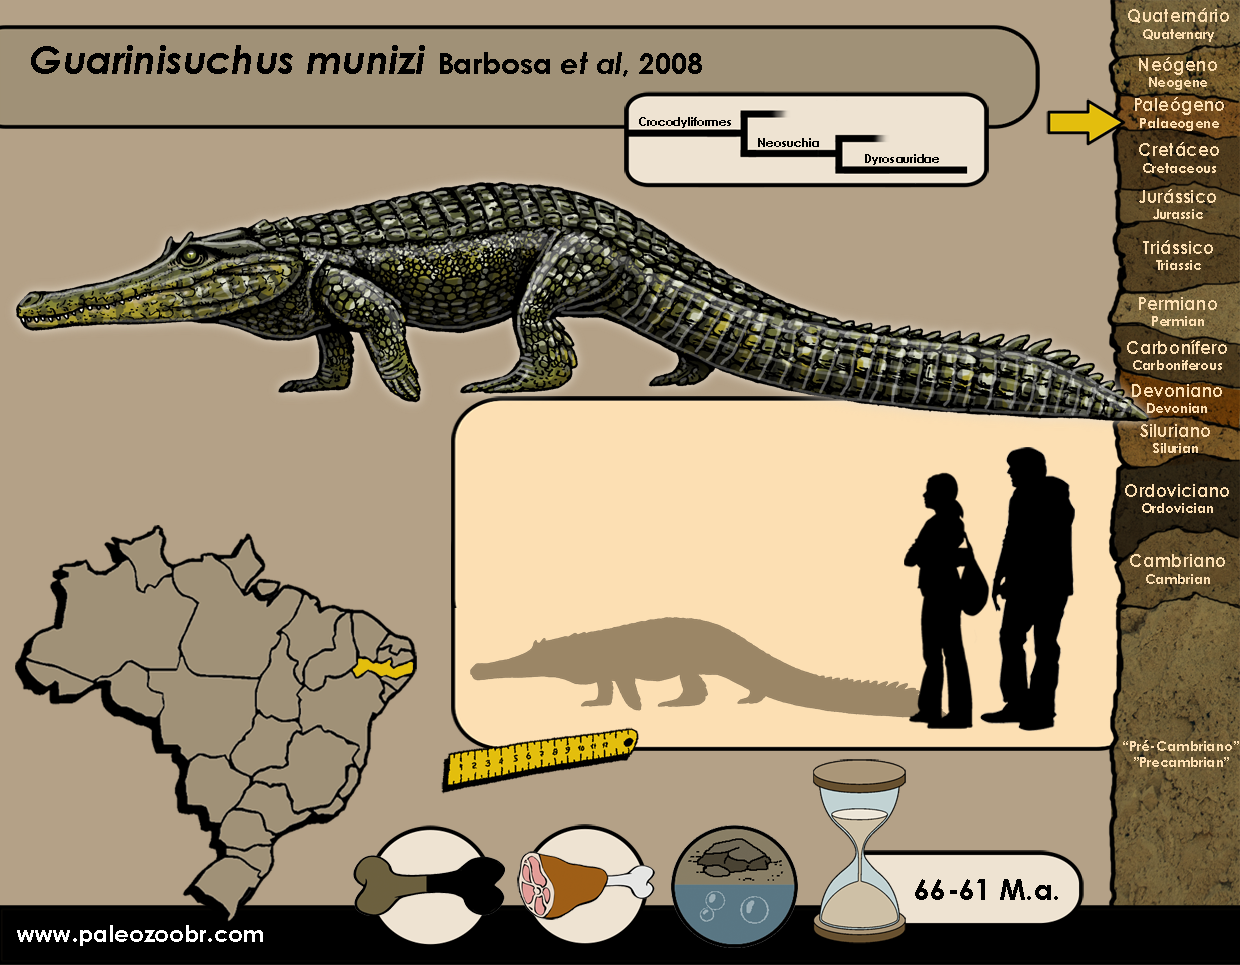 Guarinisuchus munizi